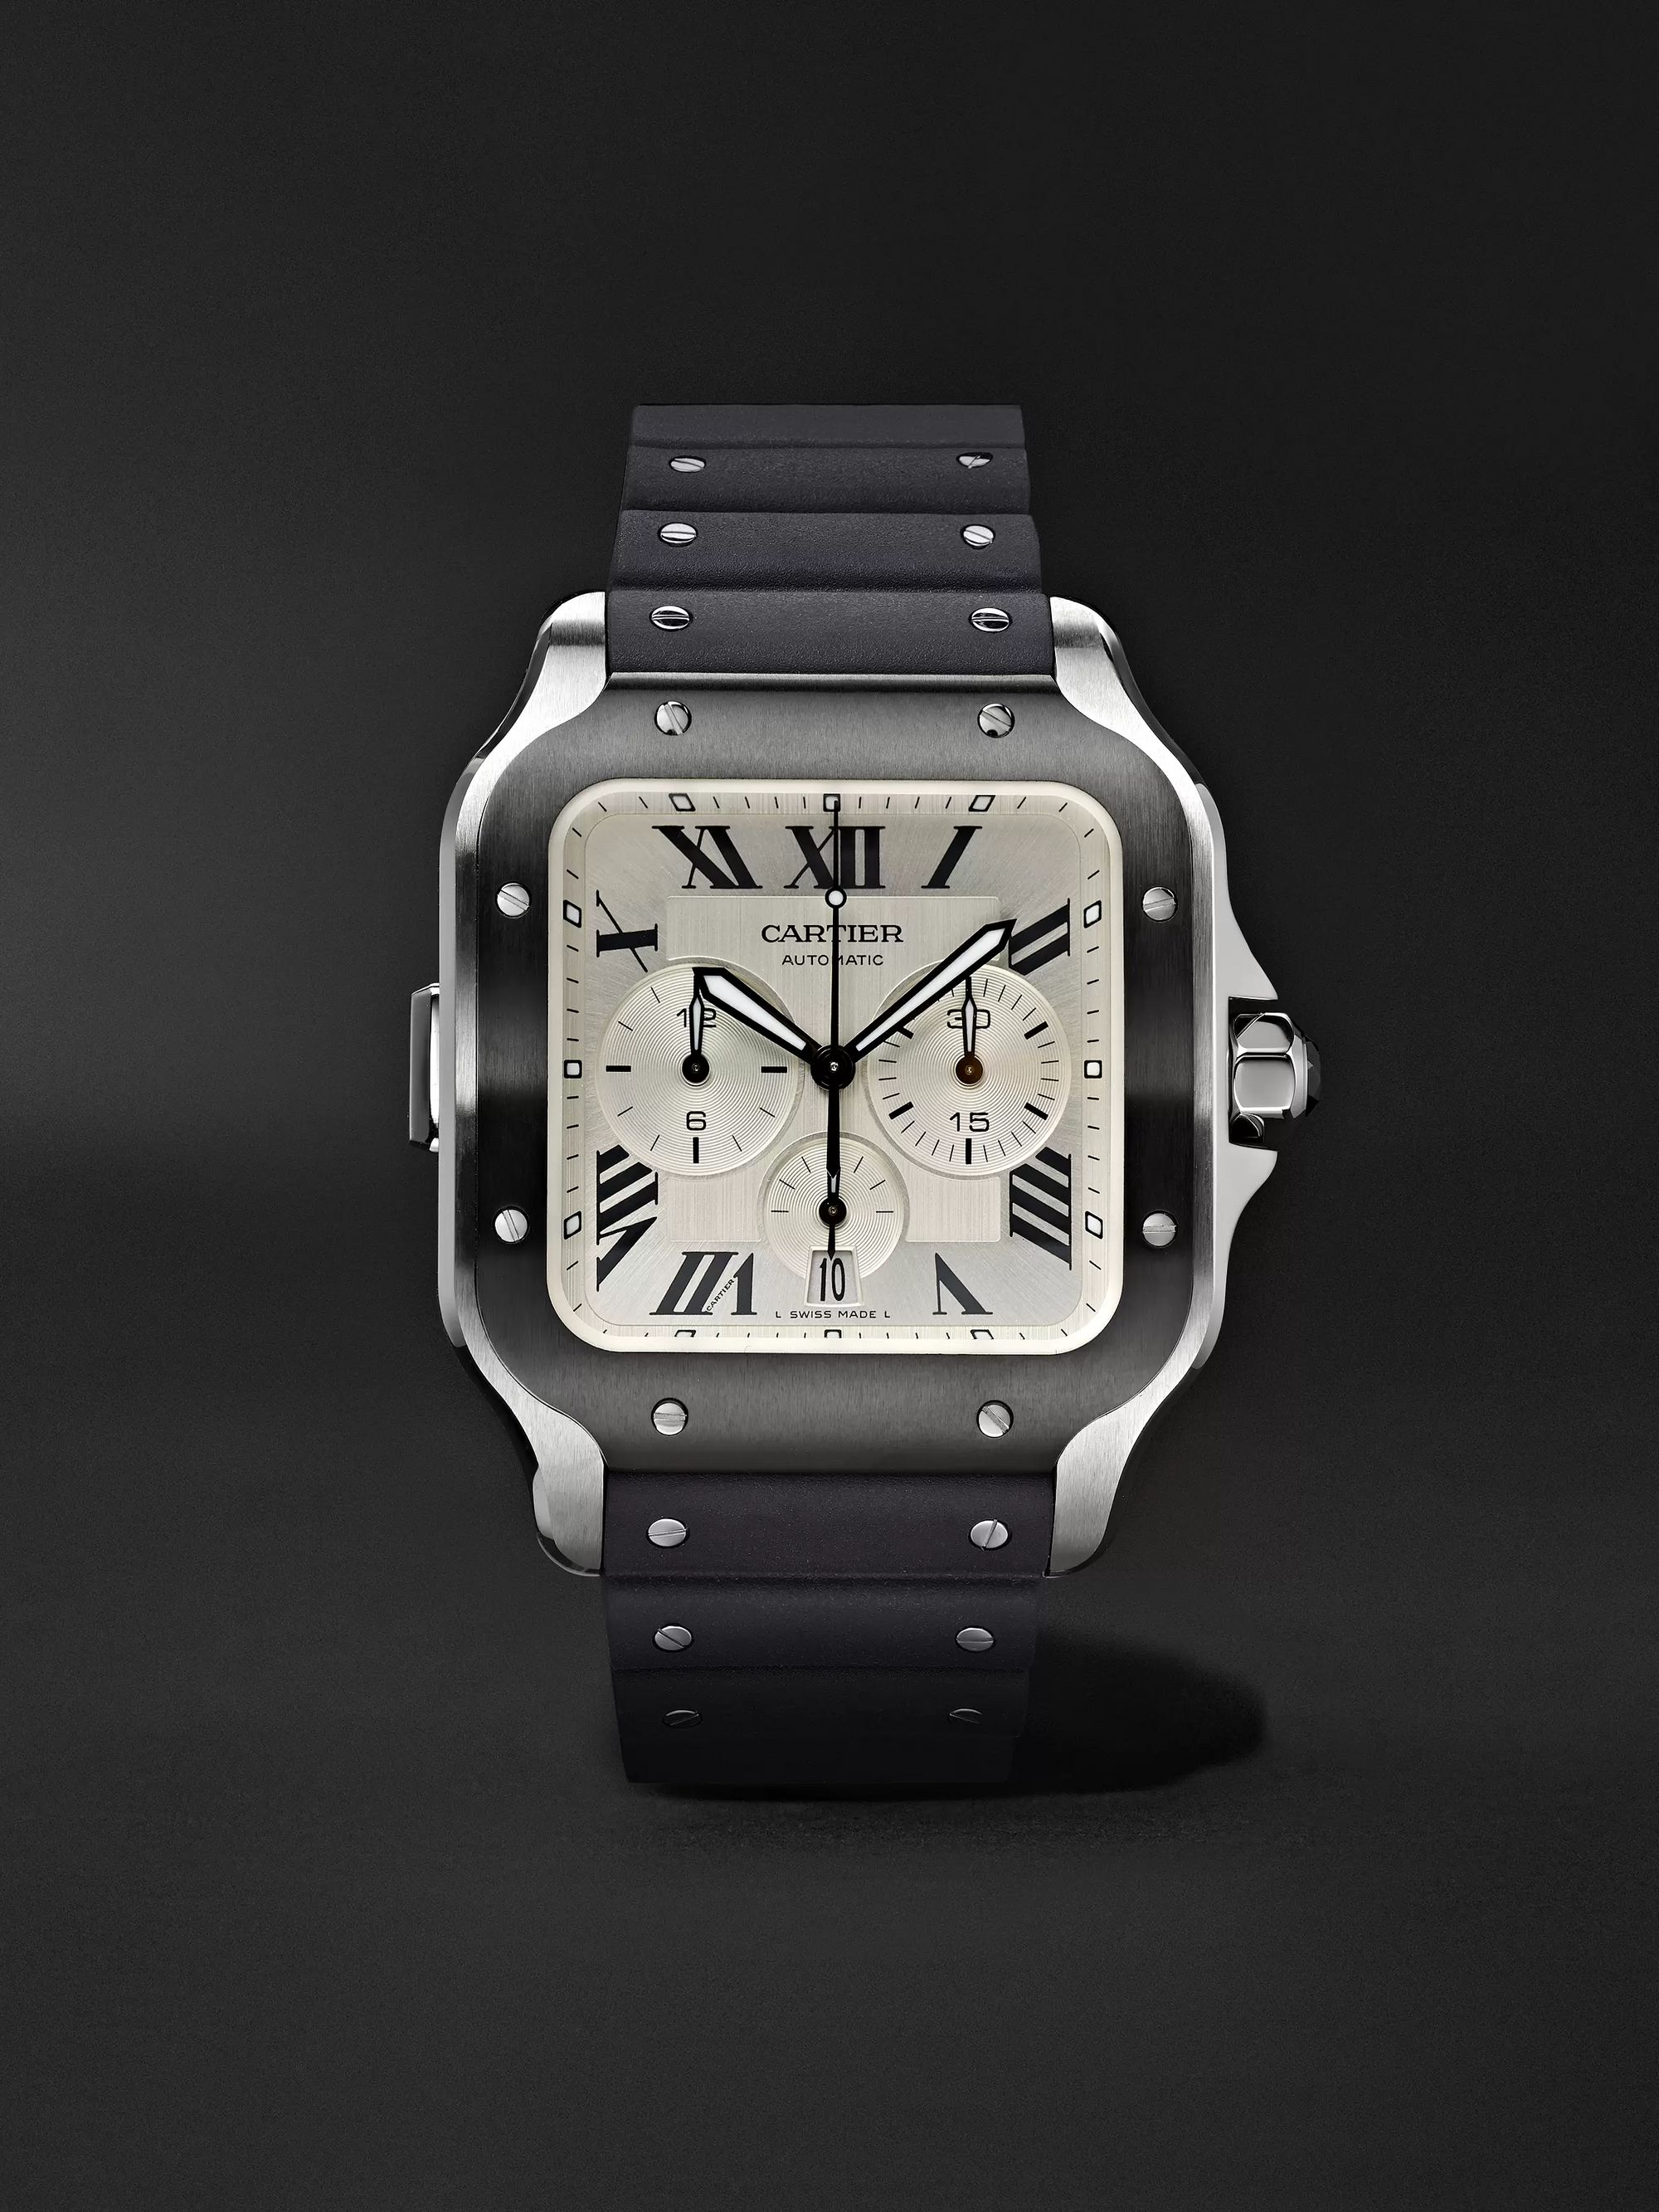 Cartier Santos de Cartier Automatic Chronograph 43.3mm Interchangeable ADLC-Coated Stainless Steel, Alligator and Rubber Watch